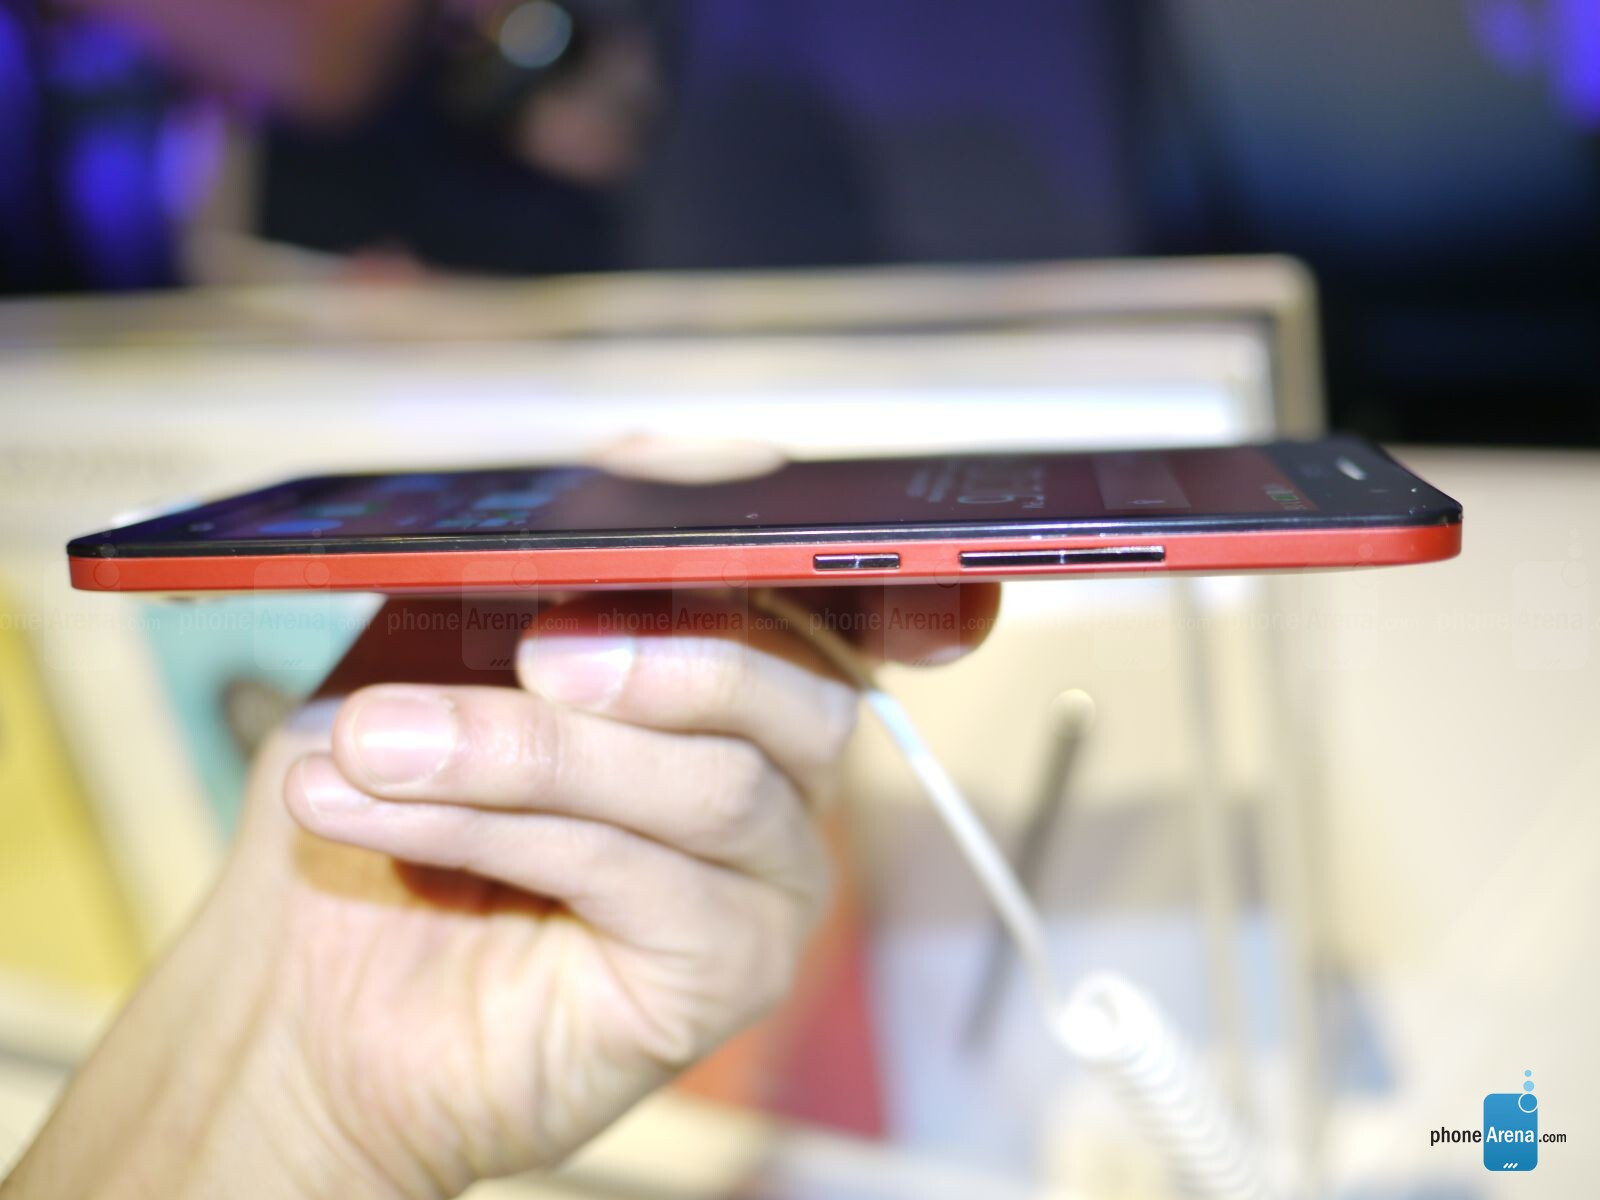 asus zenfone 6 hands on 06.JPG